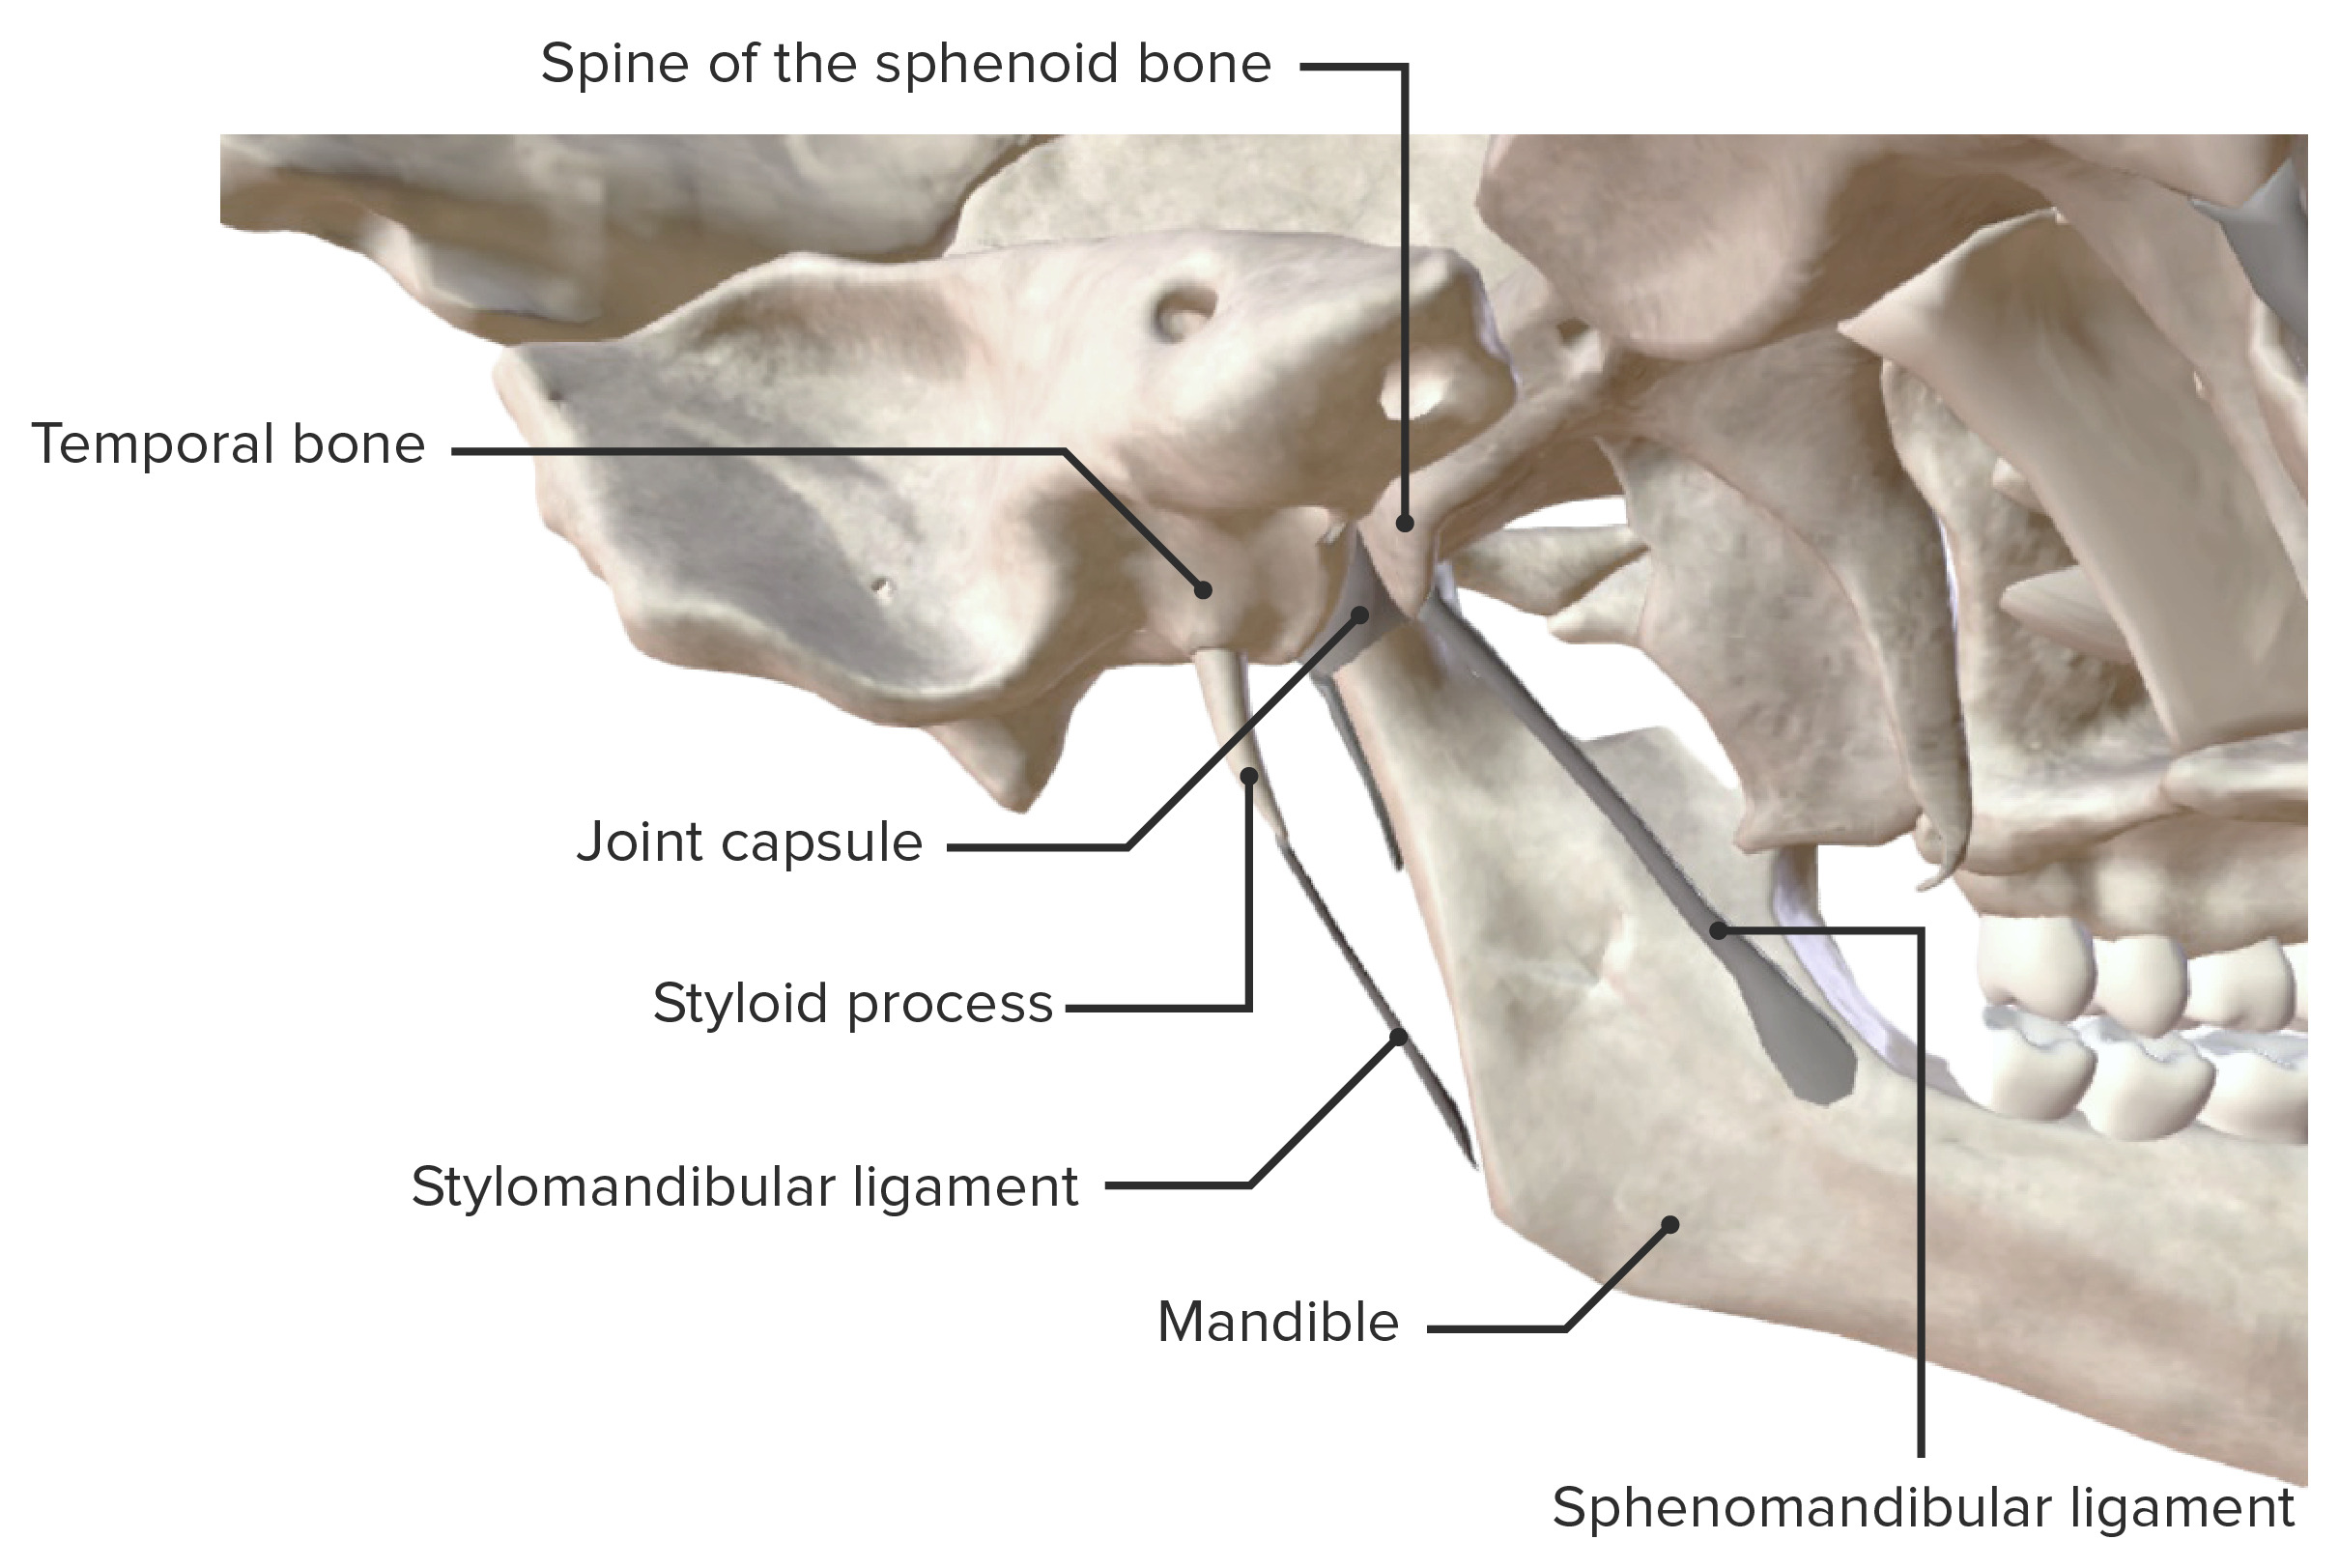 Medial view of the temporomandibular joint and supporting ligaments